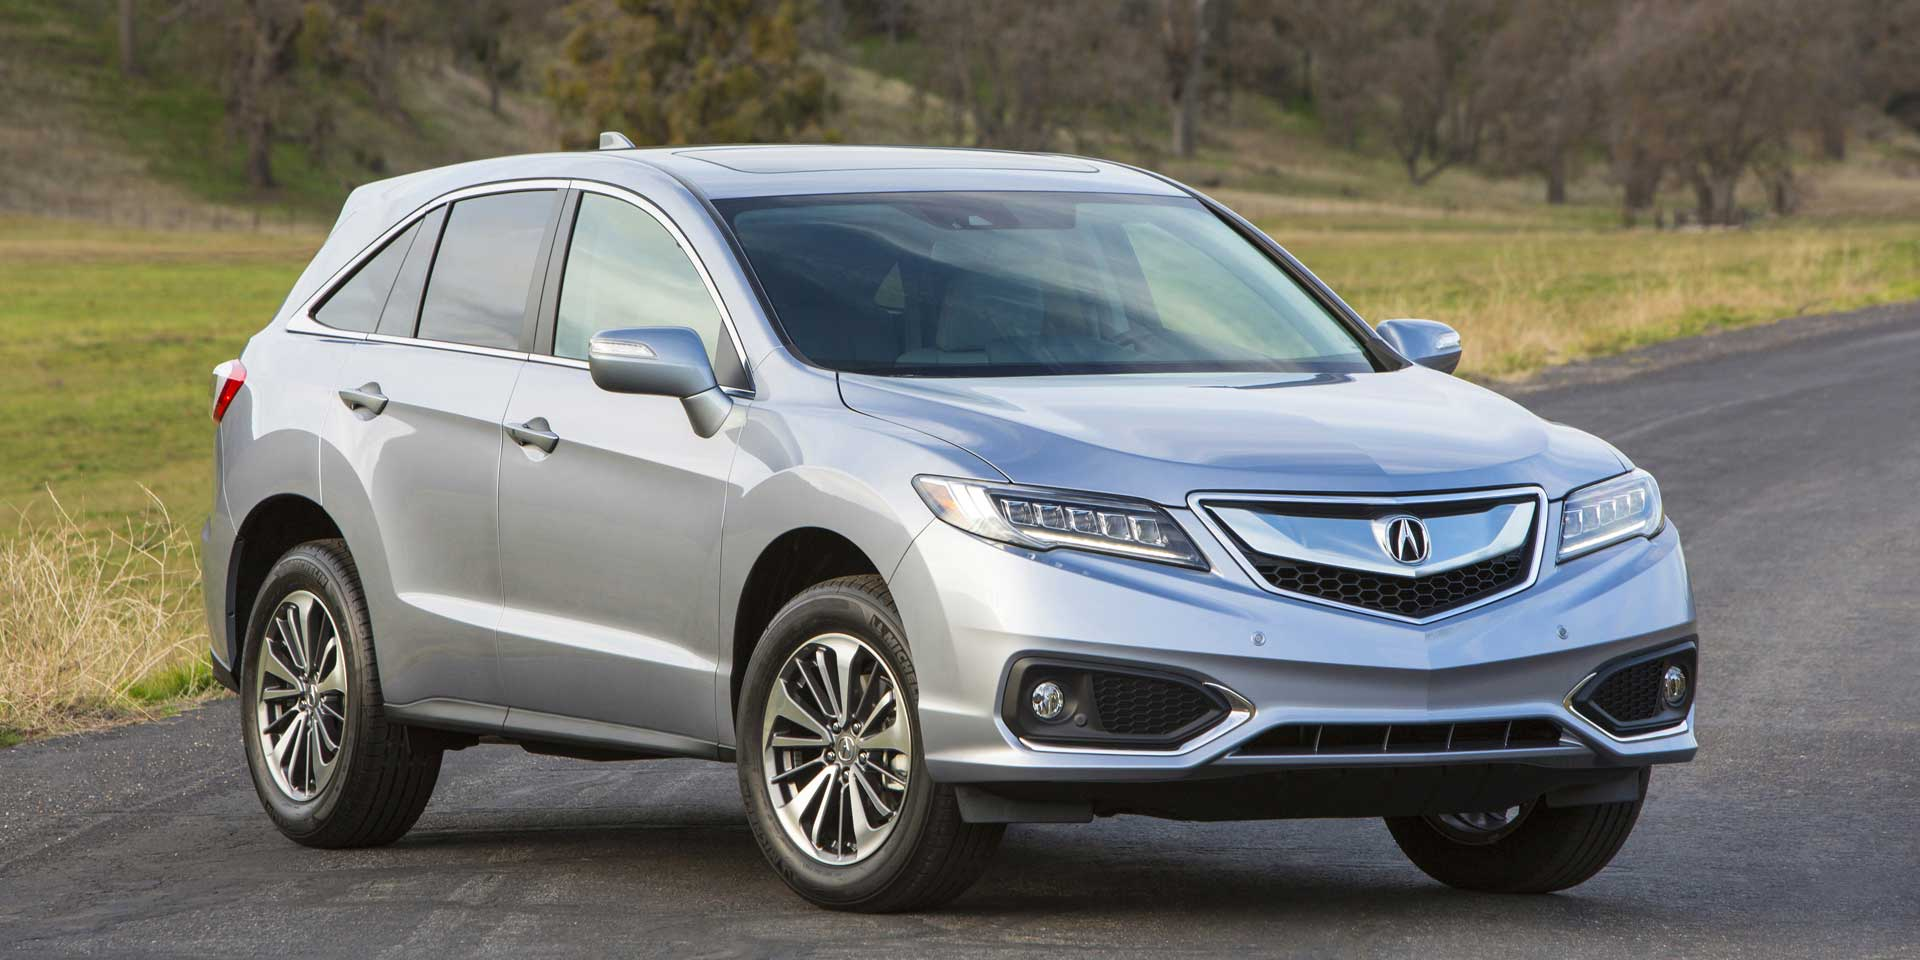 acura dealership cars suvs napleton chicago dealers ed